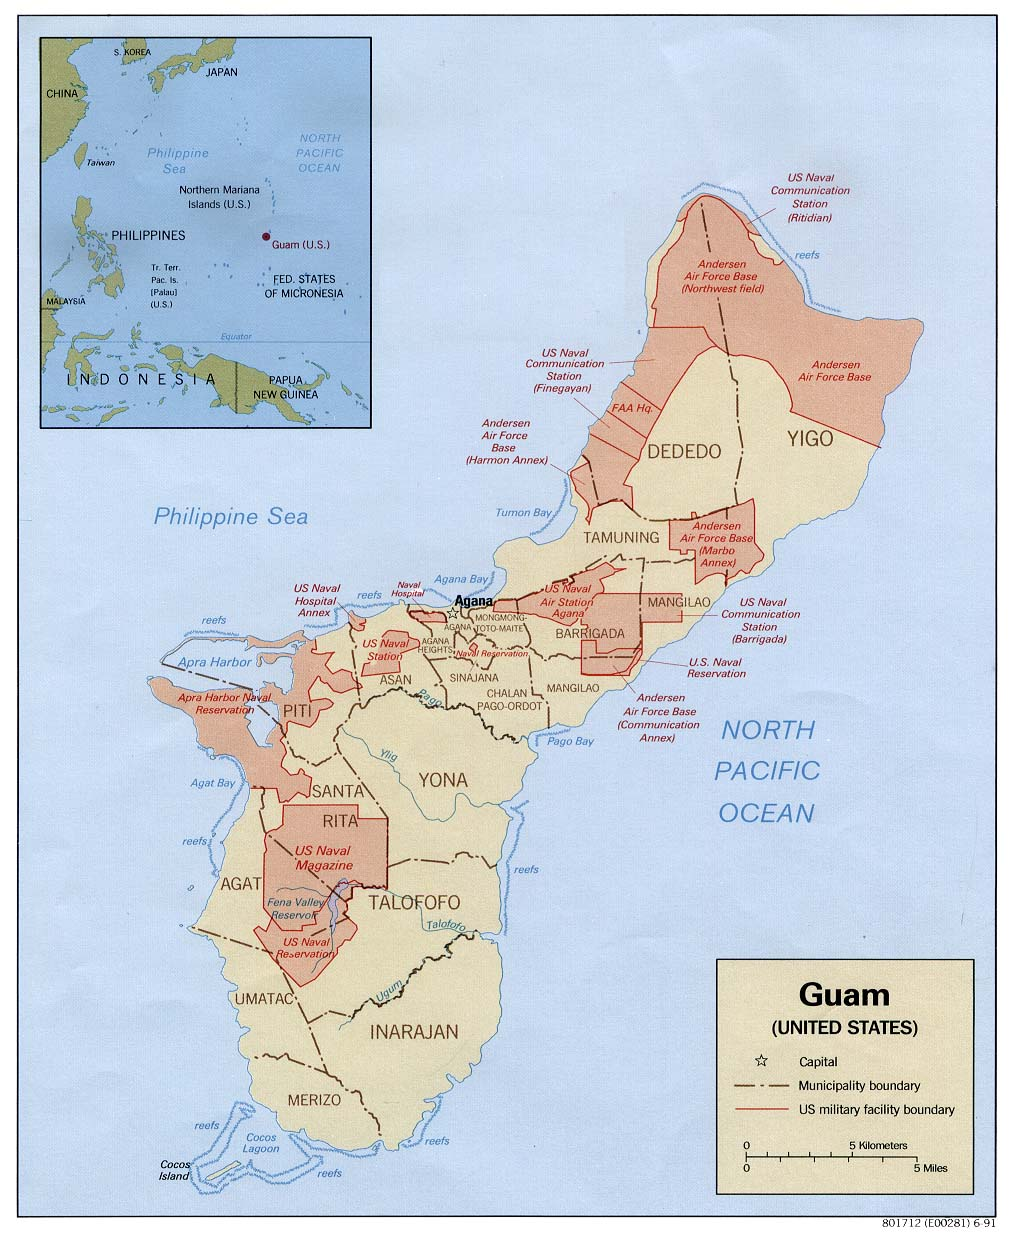 Guam United States Military Facilities Map